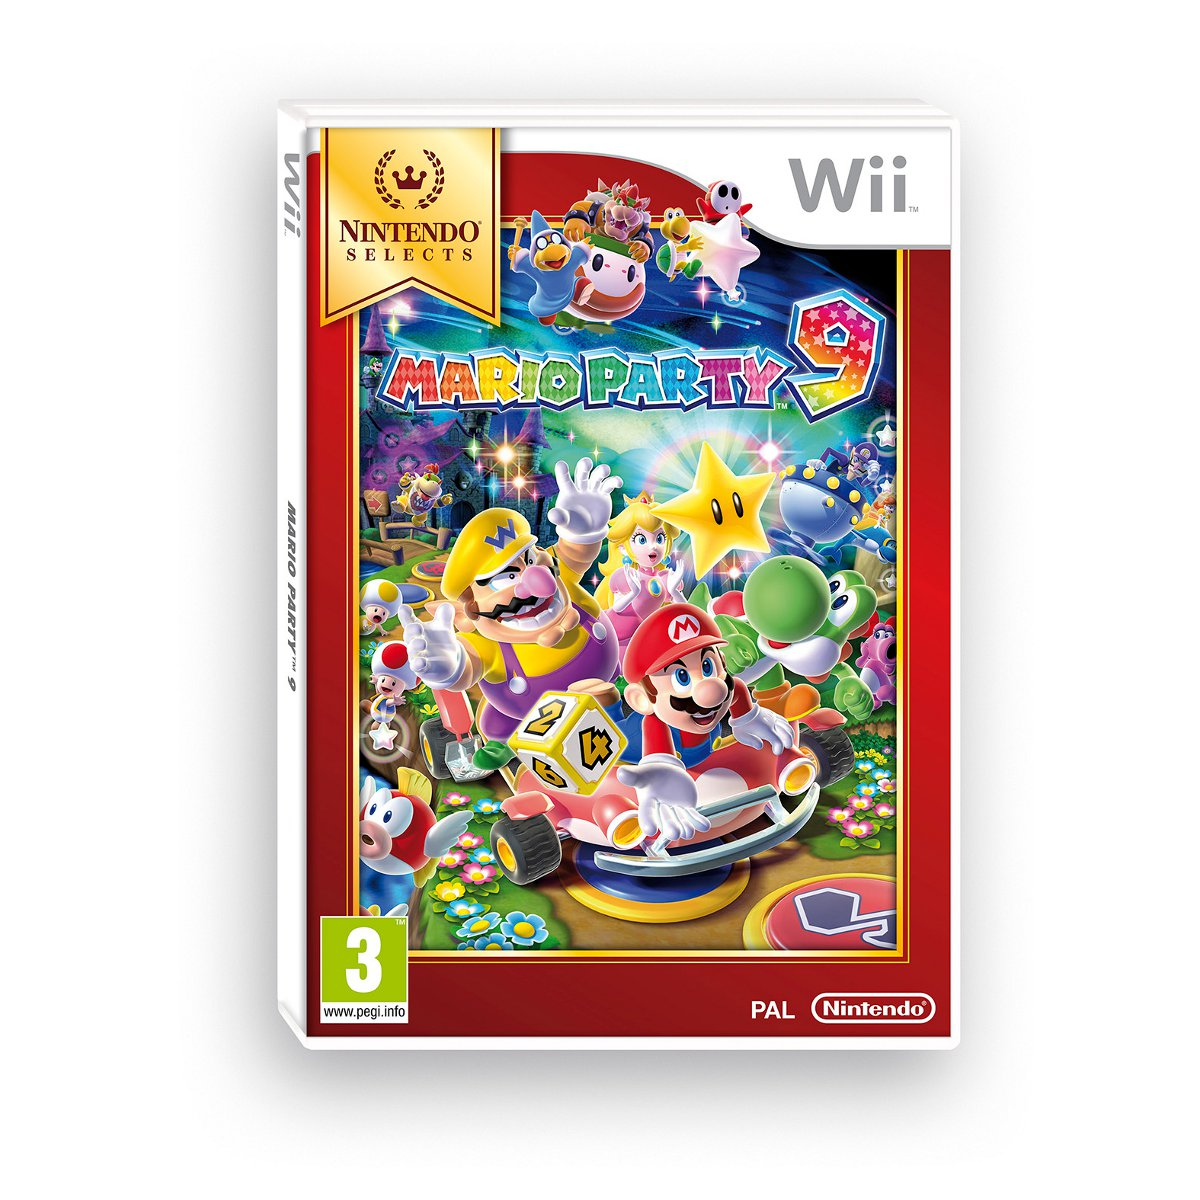 LDLC.com Mario Party 9 Nintendo Selects (Wii) Mario Party 9 Nintendo Selects (Wii)